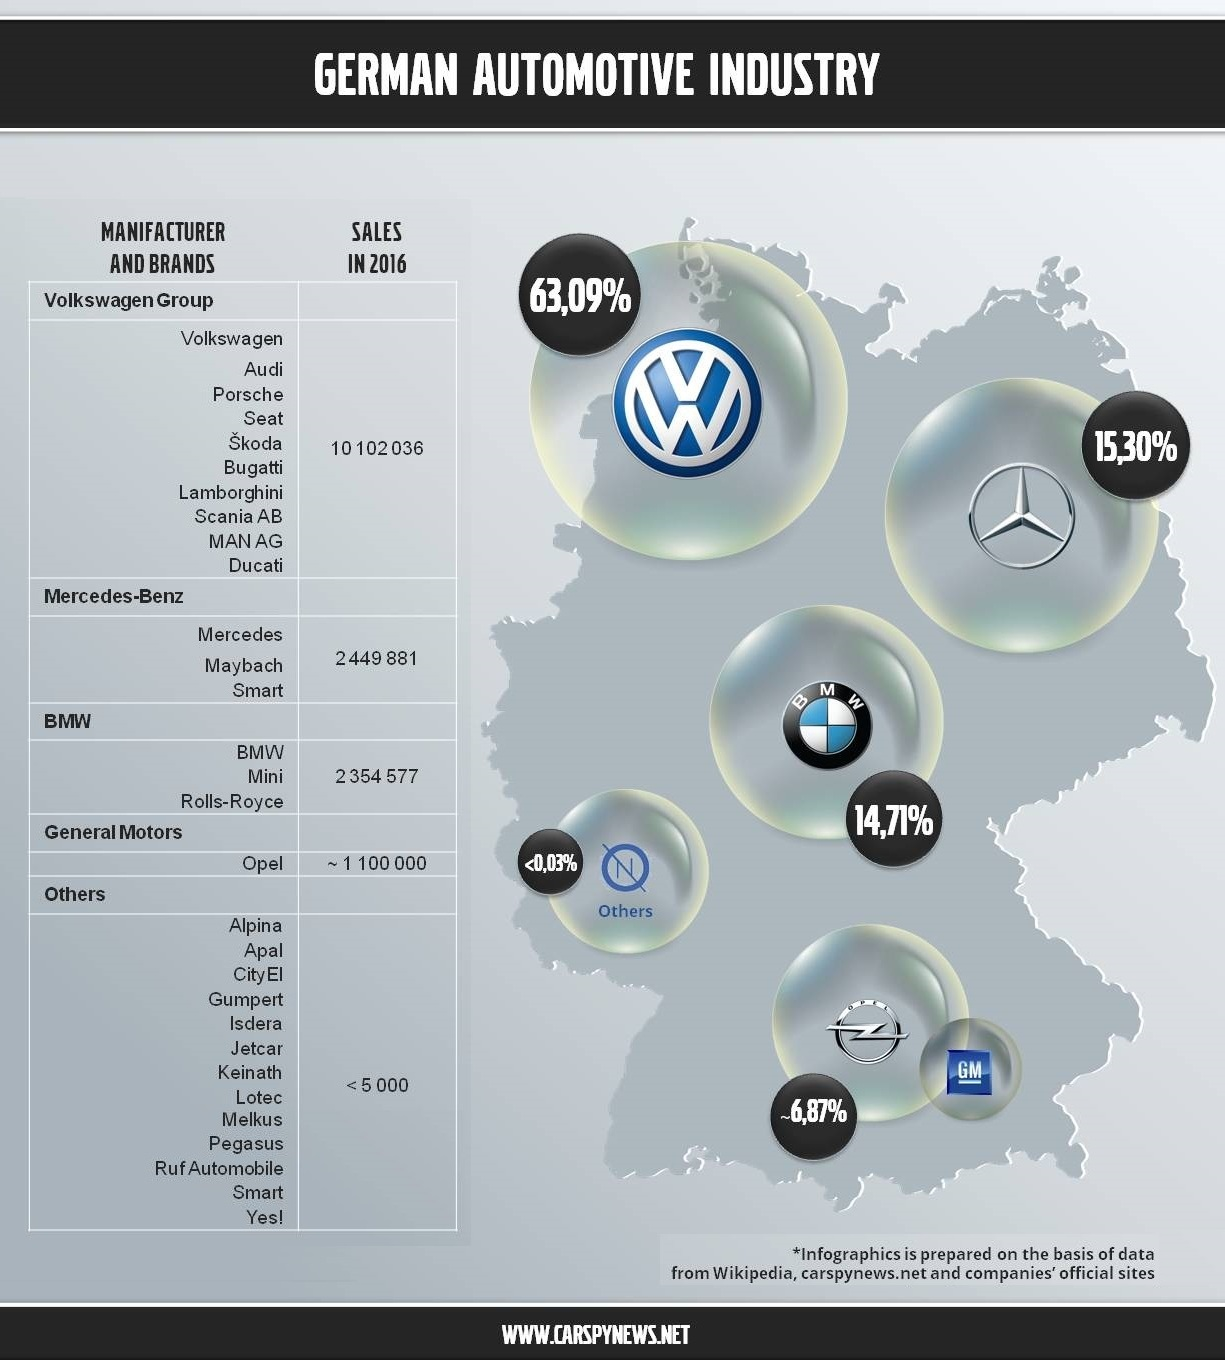 German-Automotive-Industry-2.jpg